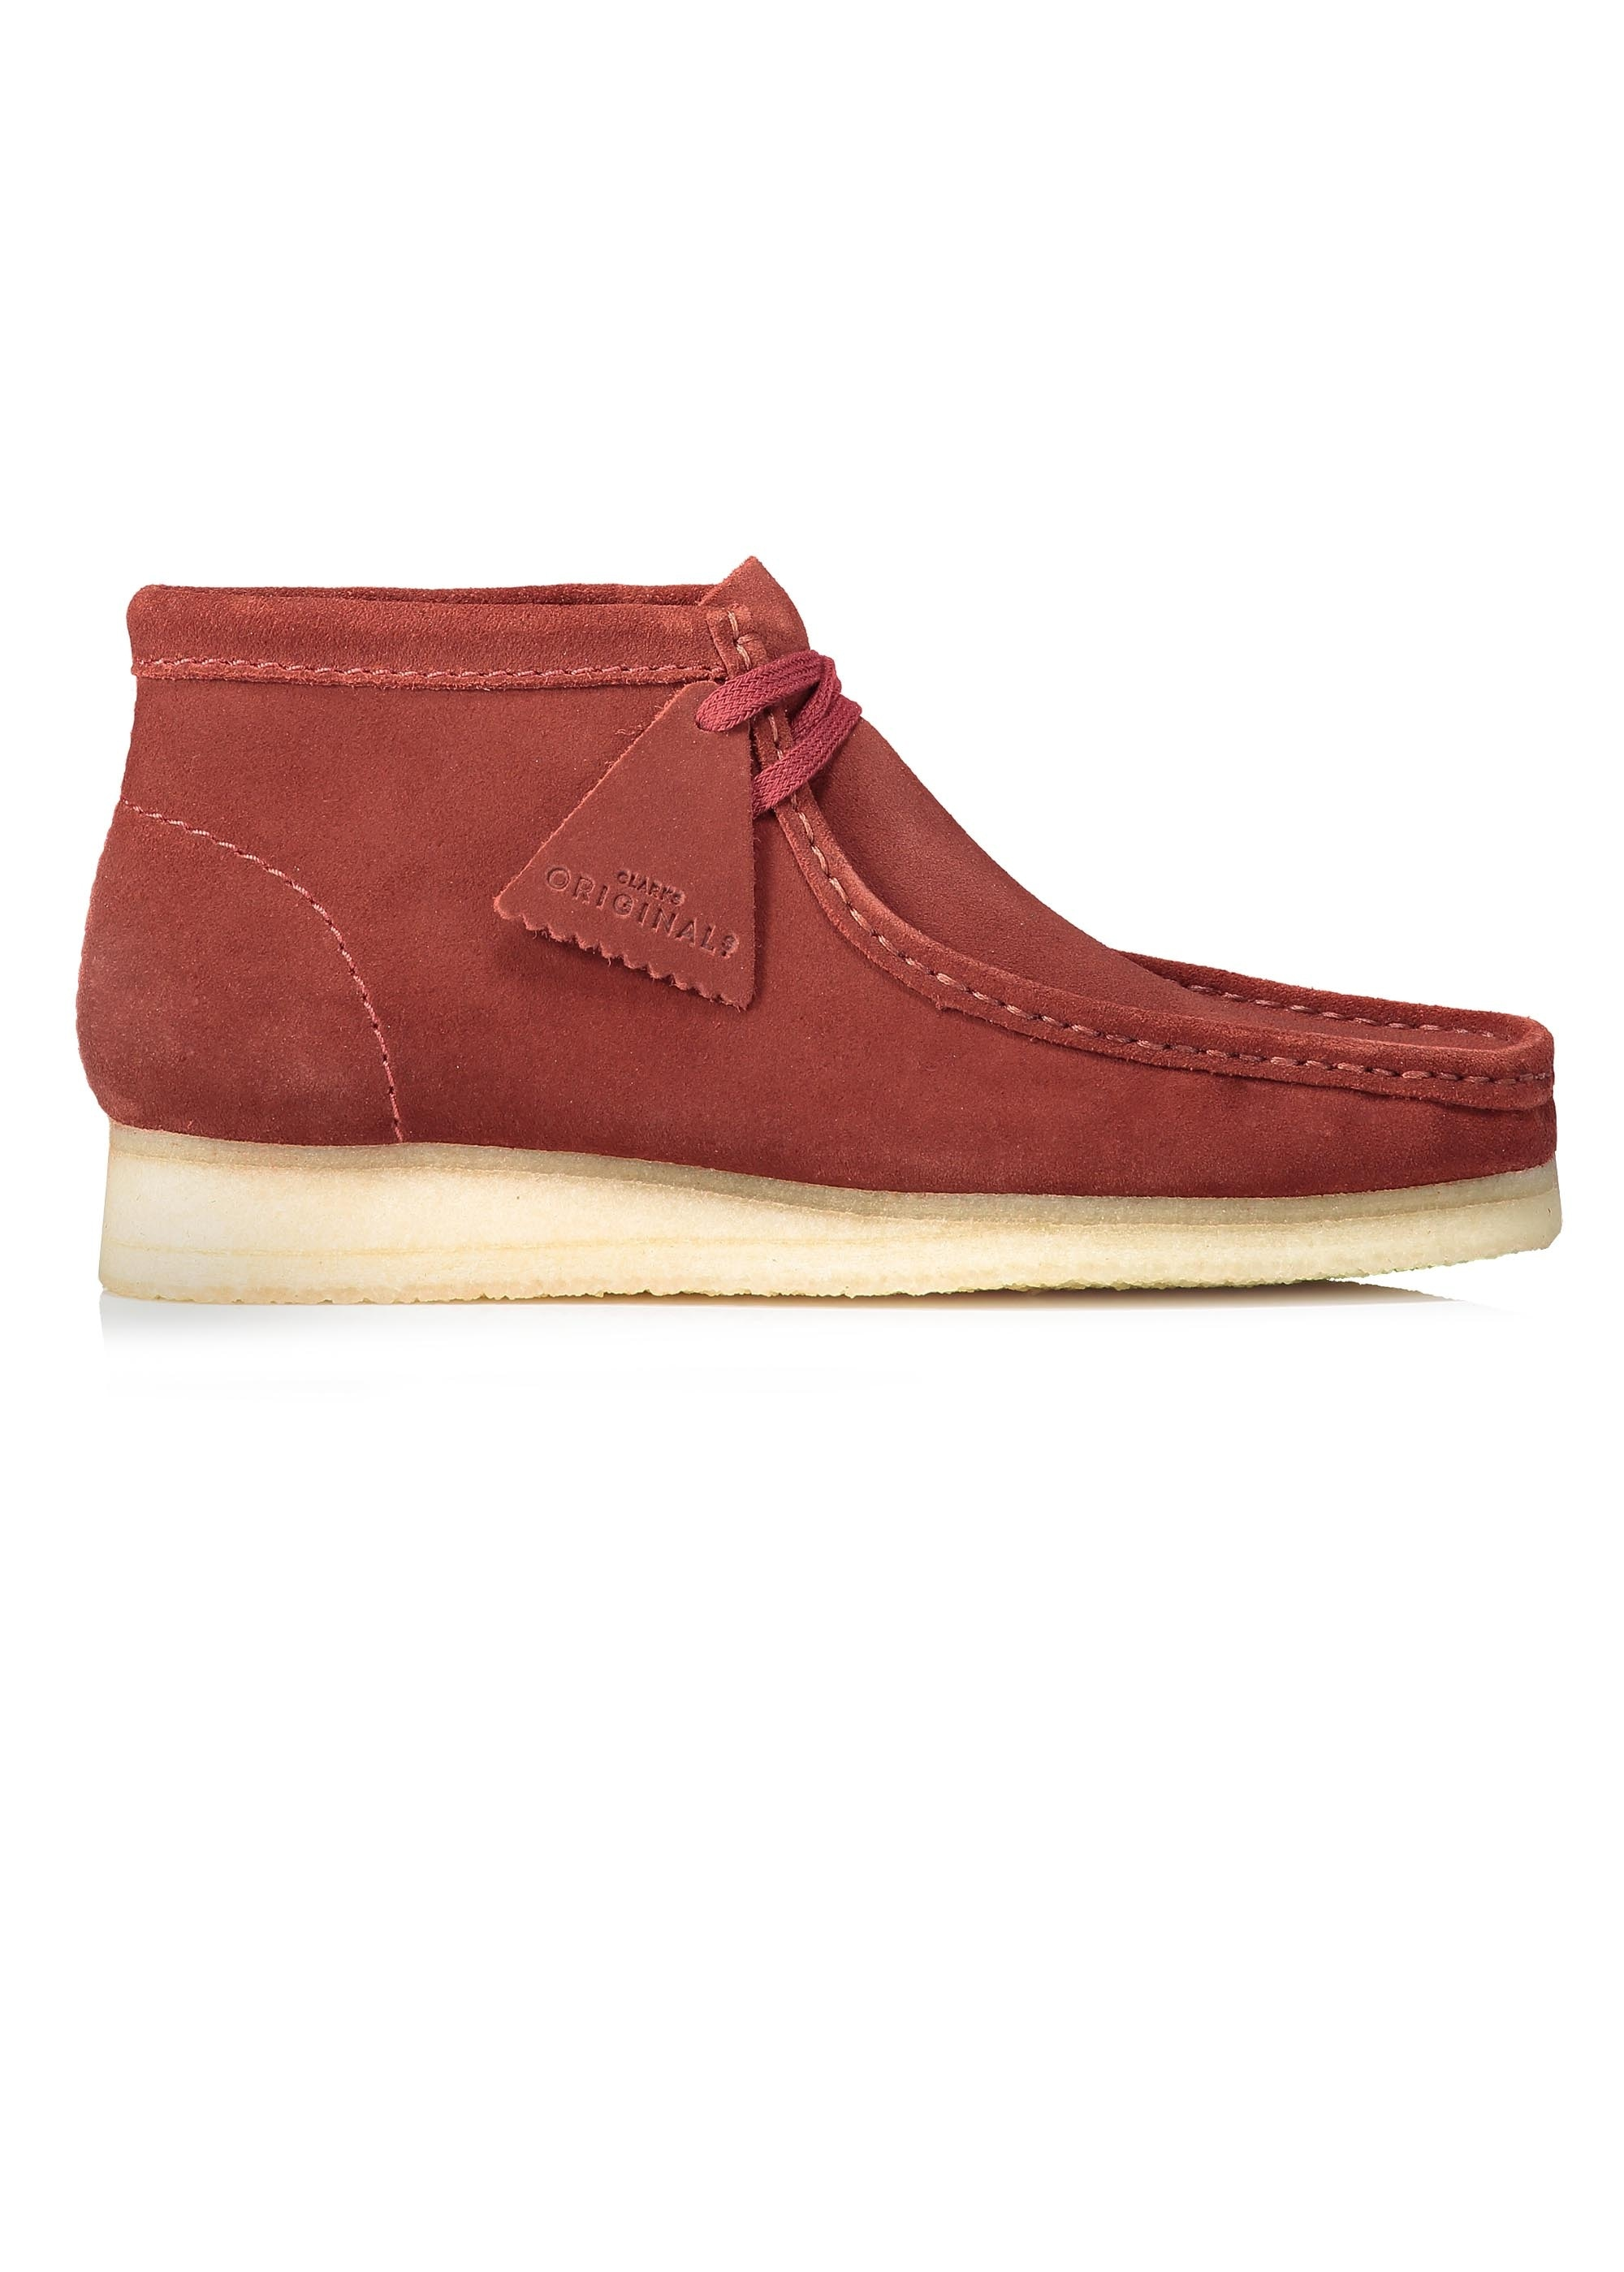 cheaper 50ced c1aba Wallabee Boot - Nut Brown